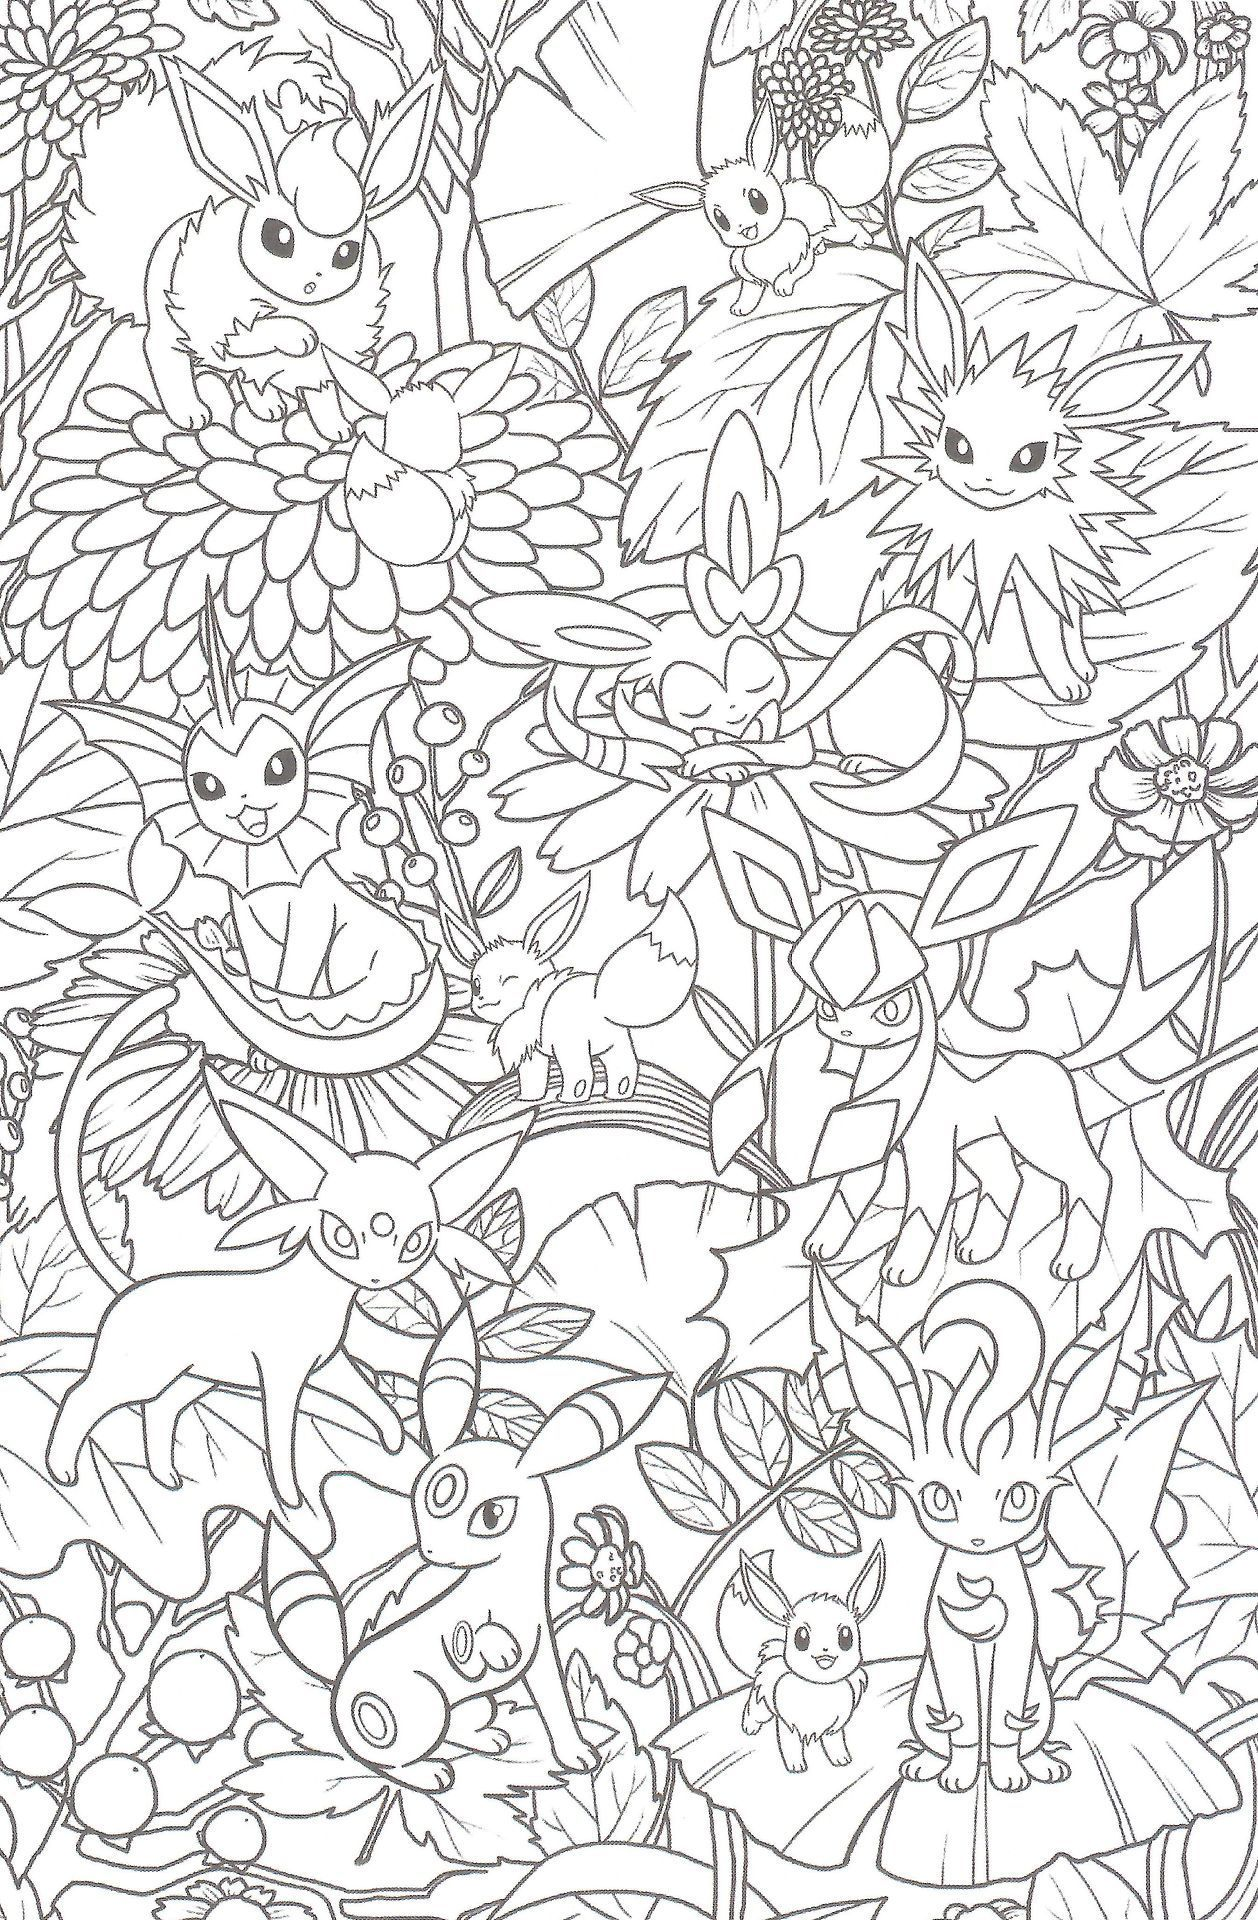 Welcome To The World Of Pokemon Pokescans Korean Postcard Pokemon Coloring Pages Pokemon Coloring Pokemon Coloring Sheets